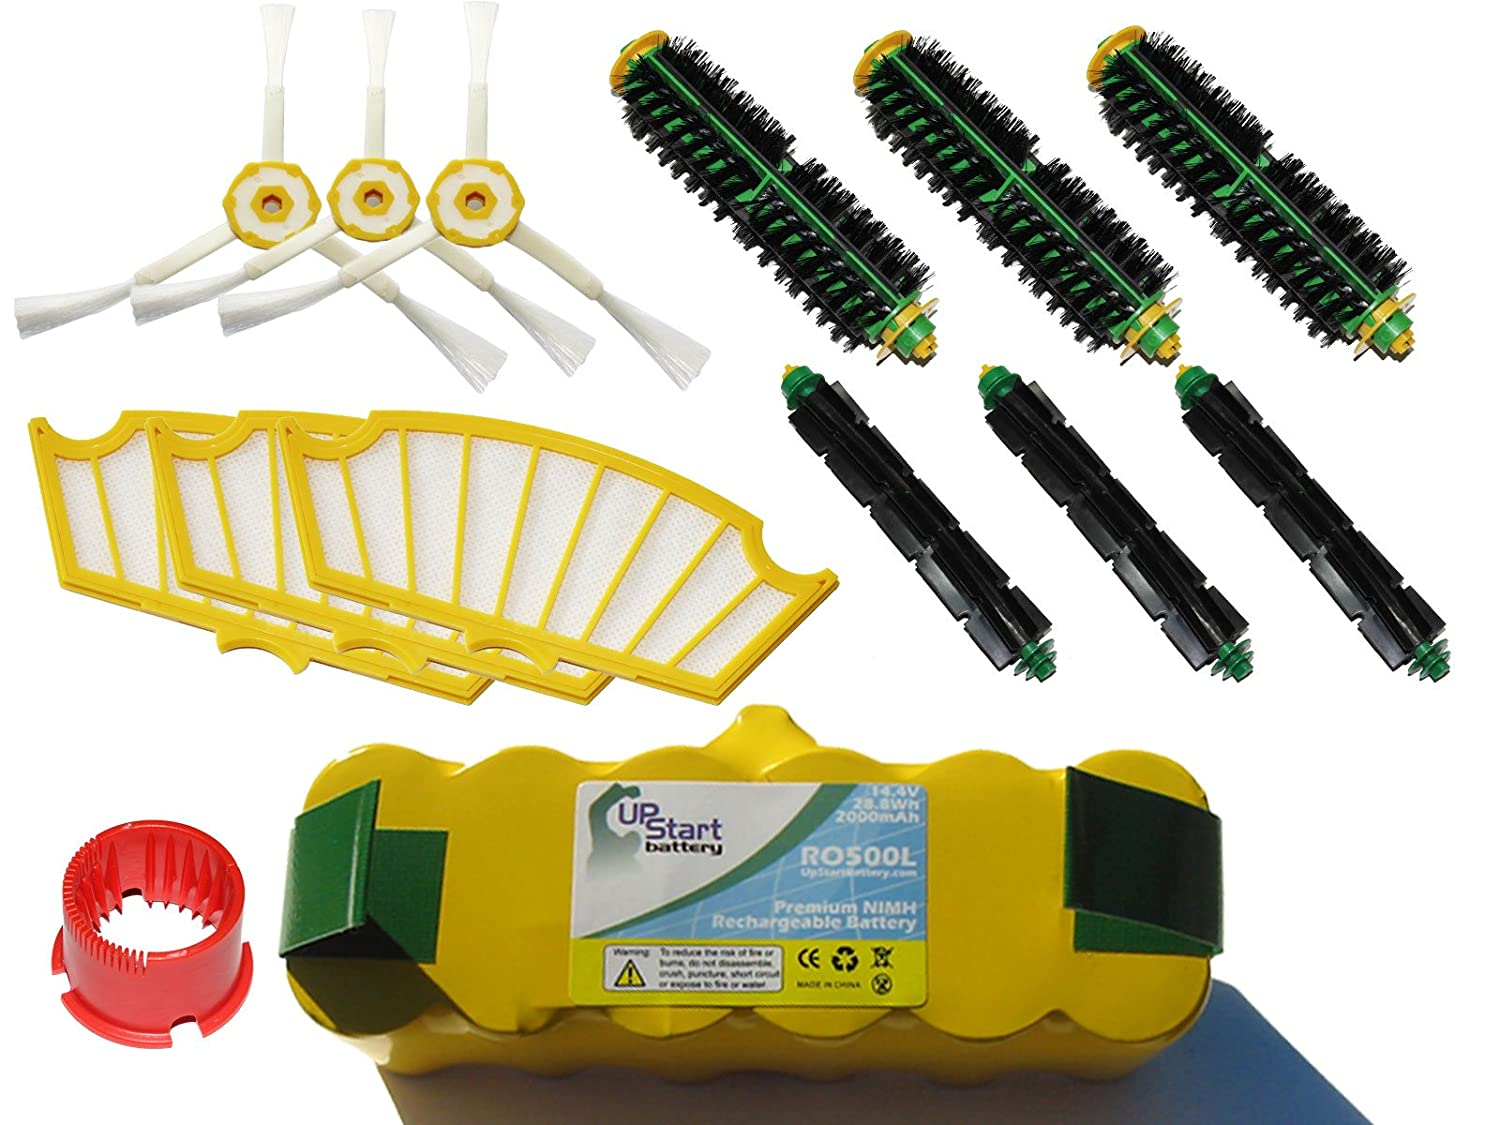 Replacement iRobot Roomba 551 Battery, Filter, Bristle Brush, Flexible Beater Brush, 3-Arm Side Brush and Brush Cleaning Tool - Kit Includes 1 Battery, 3 Filter, 3 Bristle Brush, 3 Flexible Beater Brush, 3 3-Arm Side Brush and 1 Brush Cleaning Tool